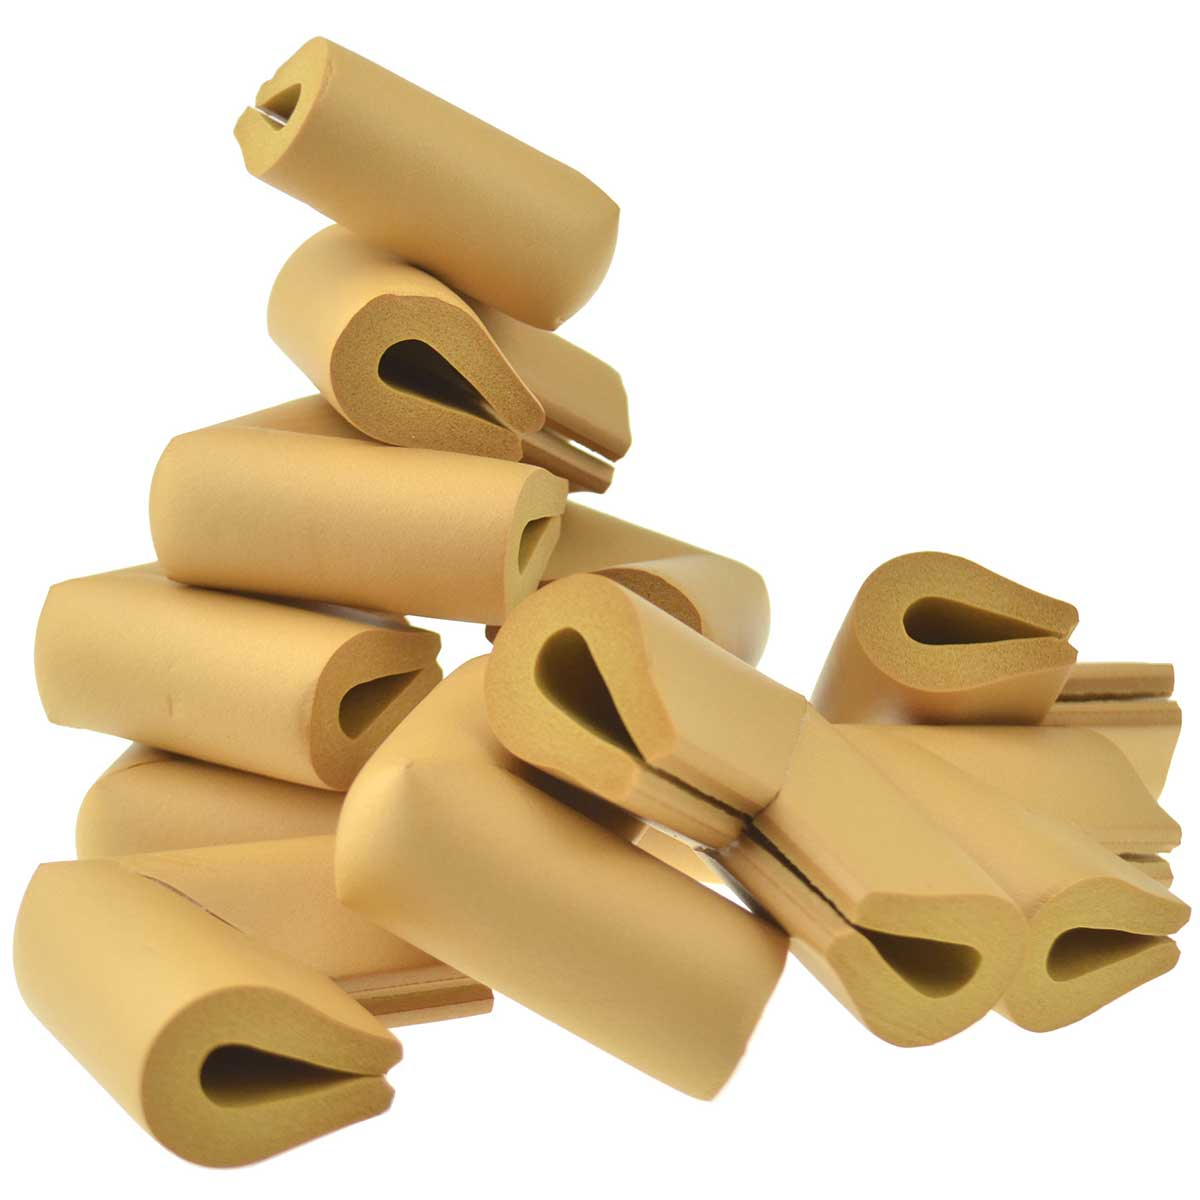 12 Pieces Ginger U-Shaped Foam Corner Protectors